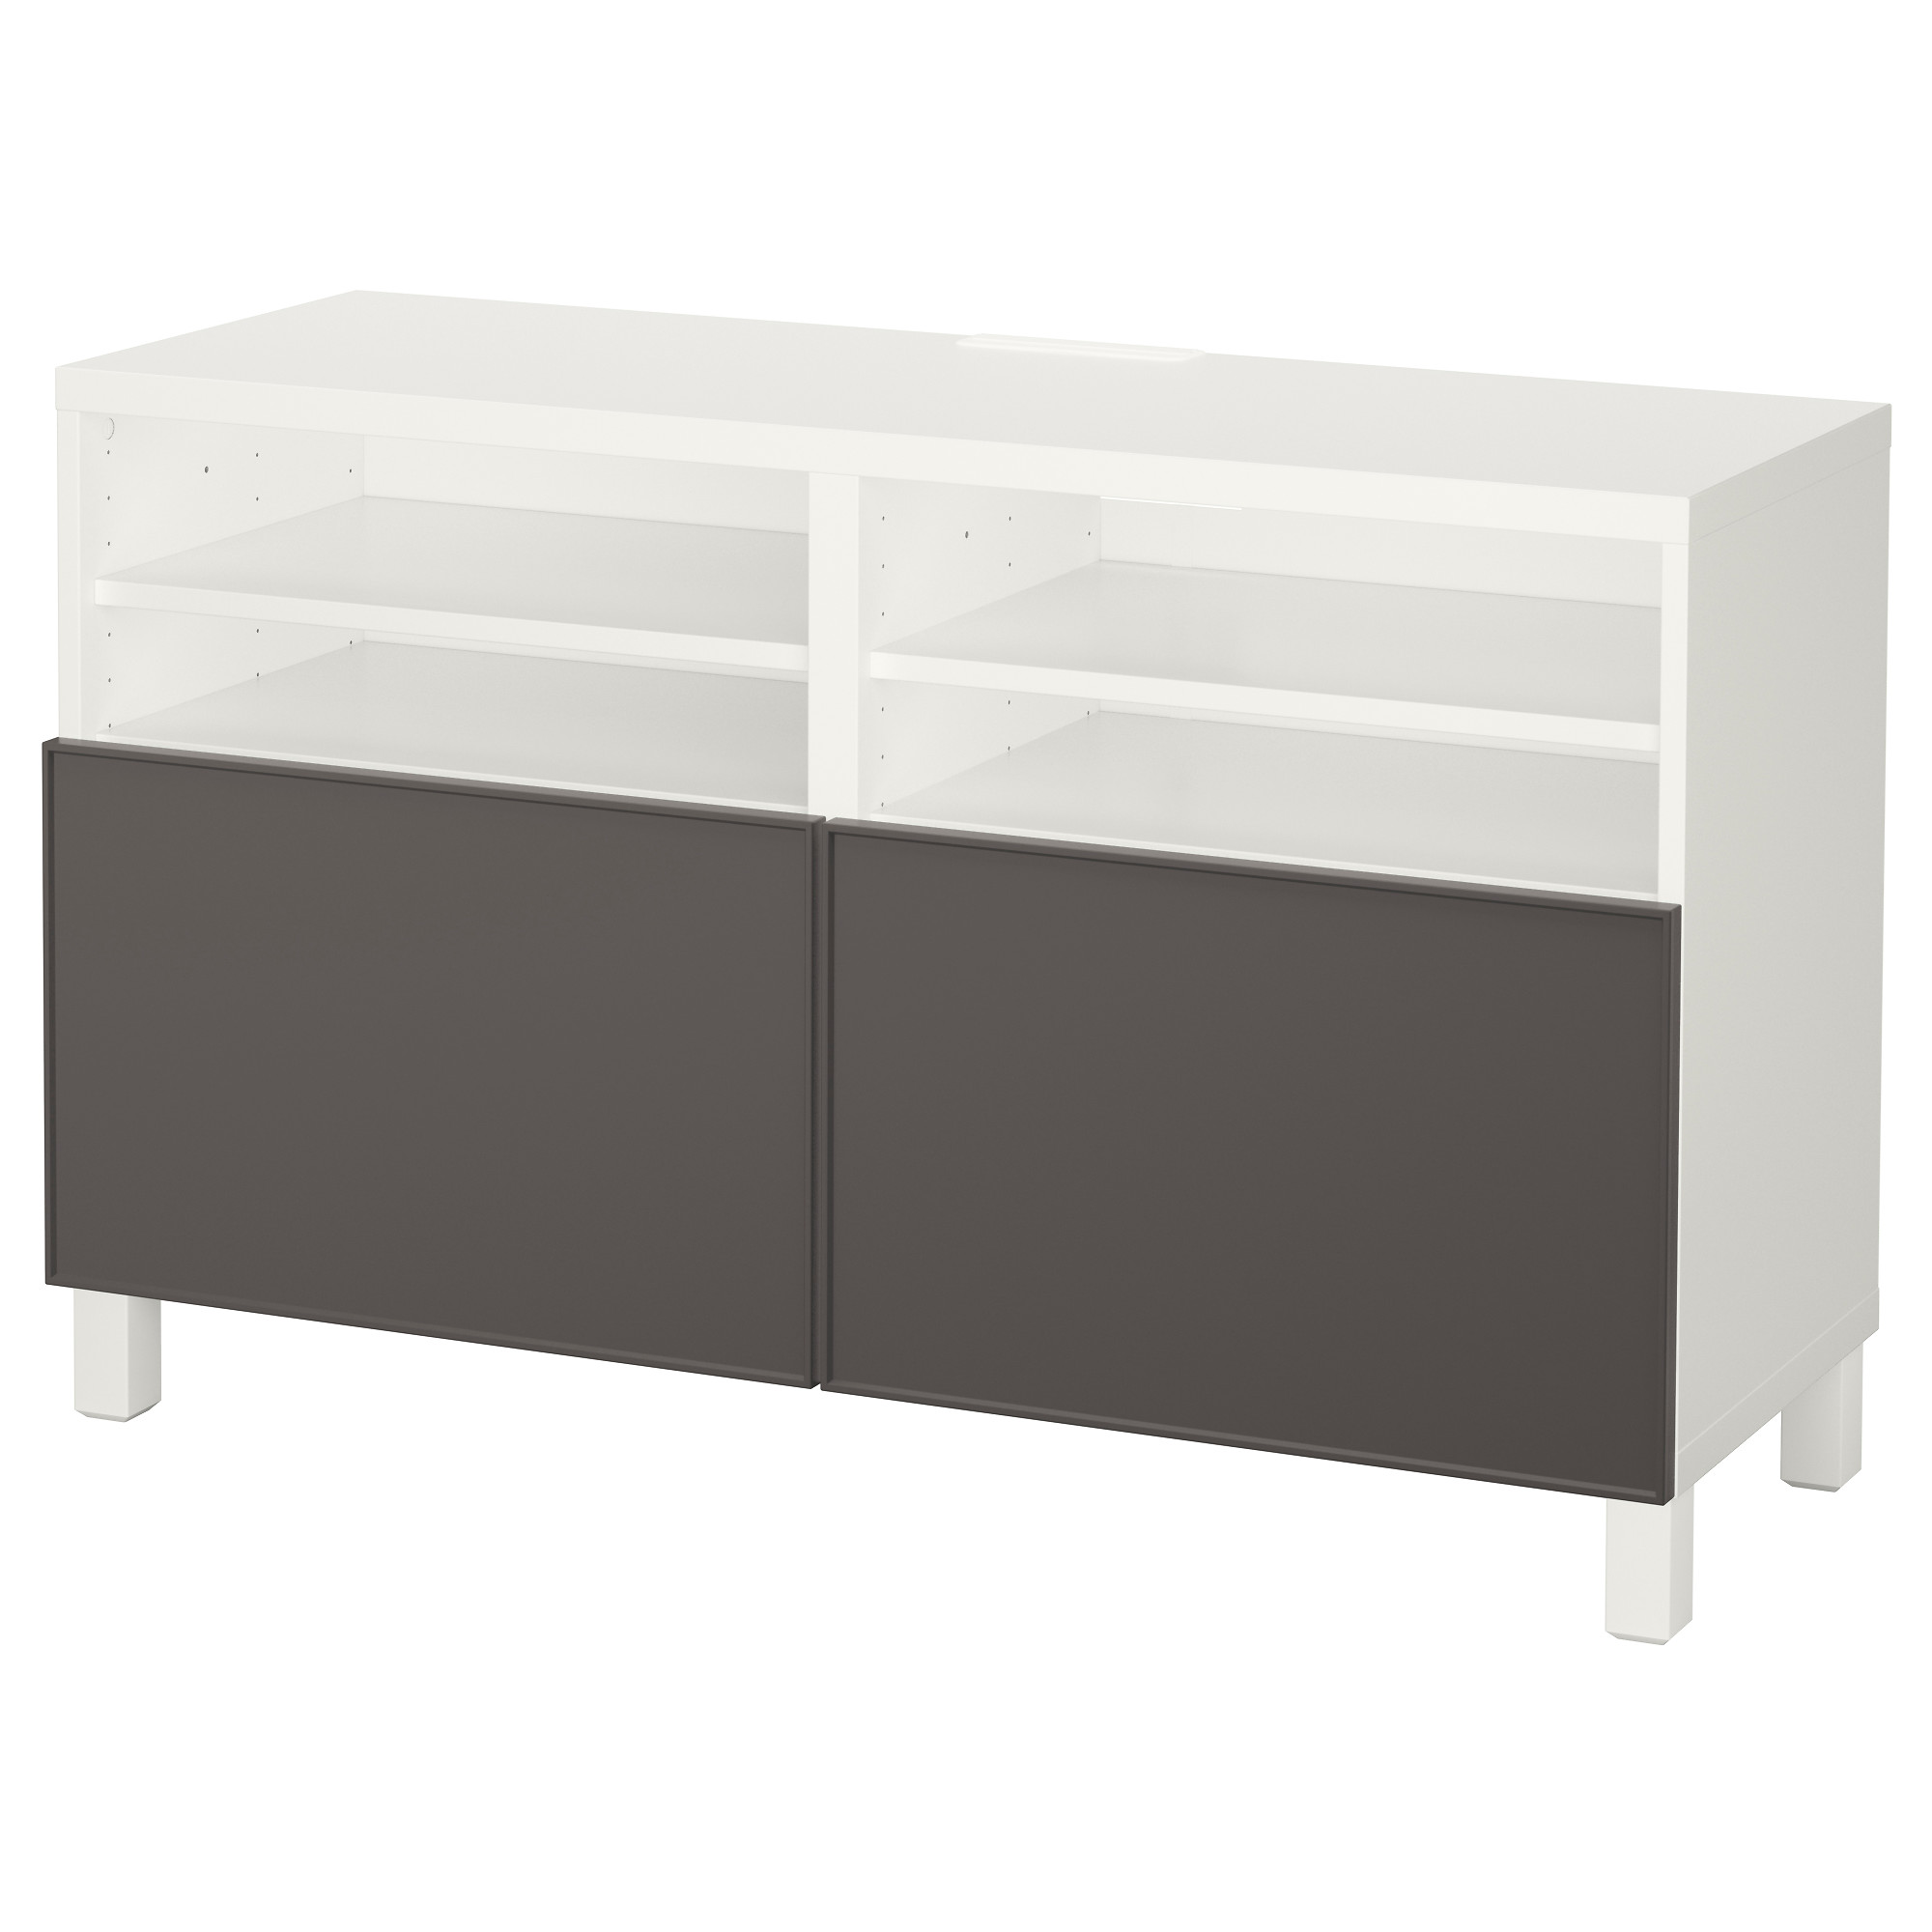 interesting best banc tv avec portes blanc grundsviken On meuble tv petite largeur